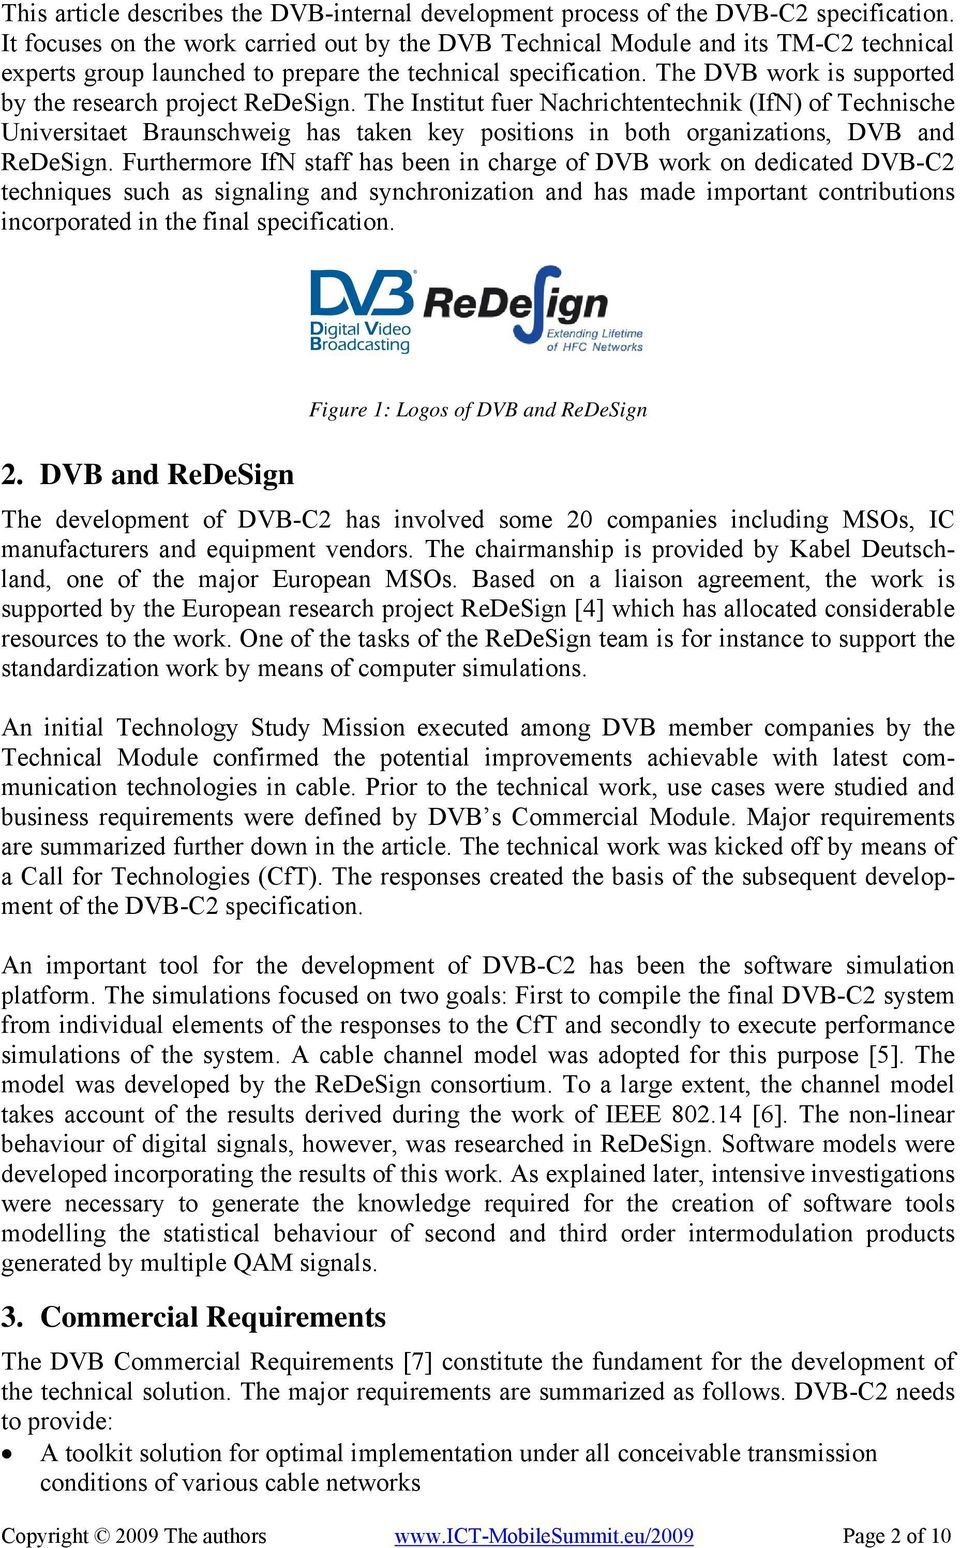 The DVB work is supported by the research project ReDeSign.